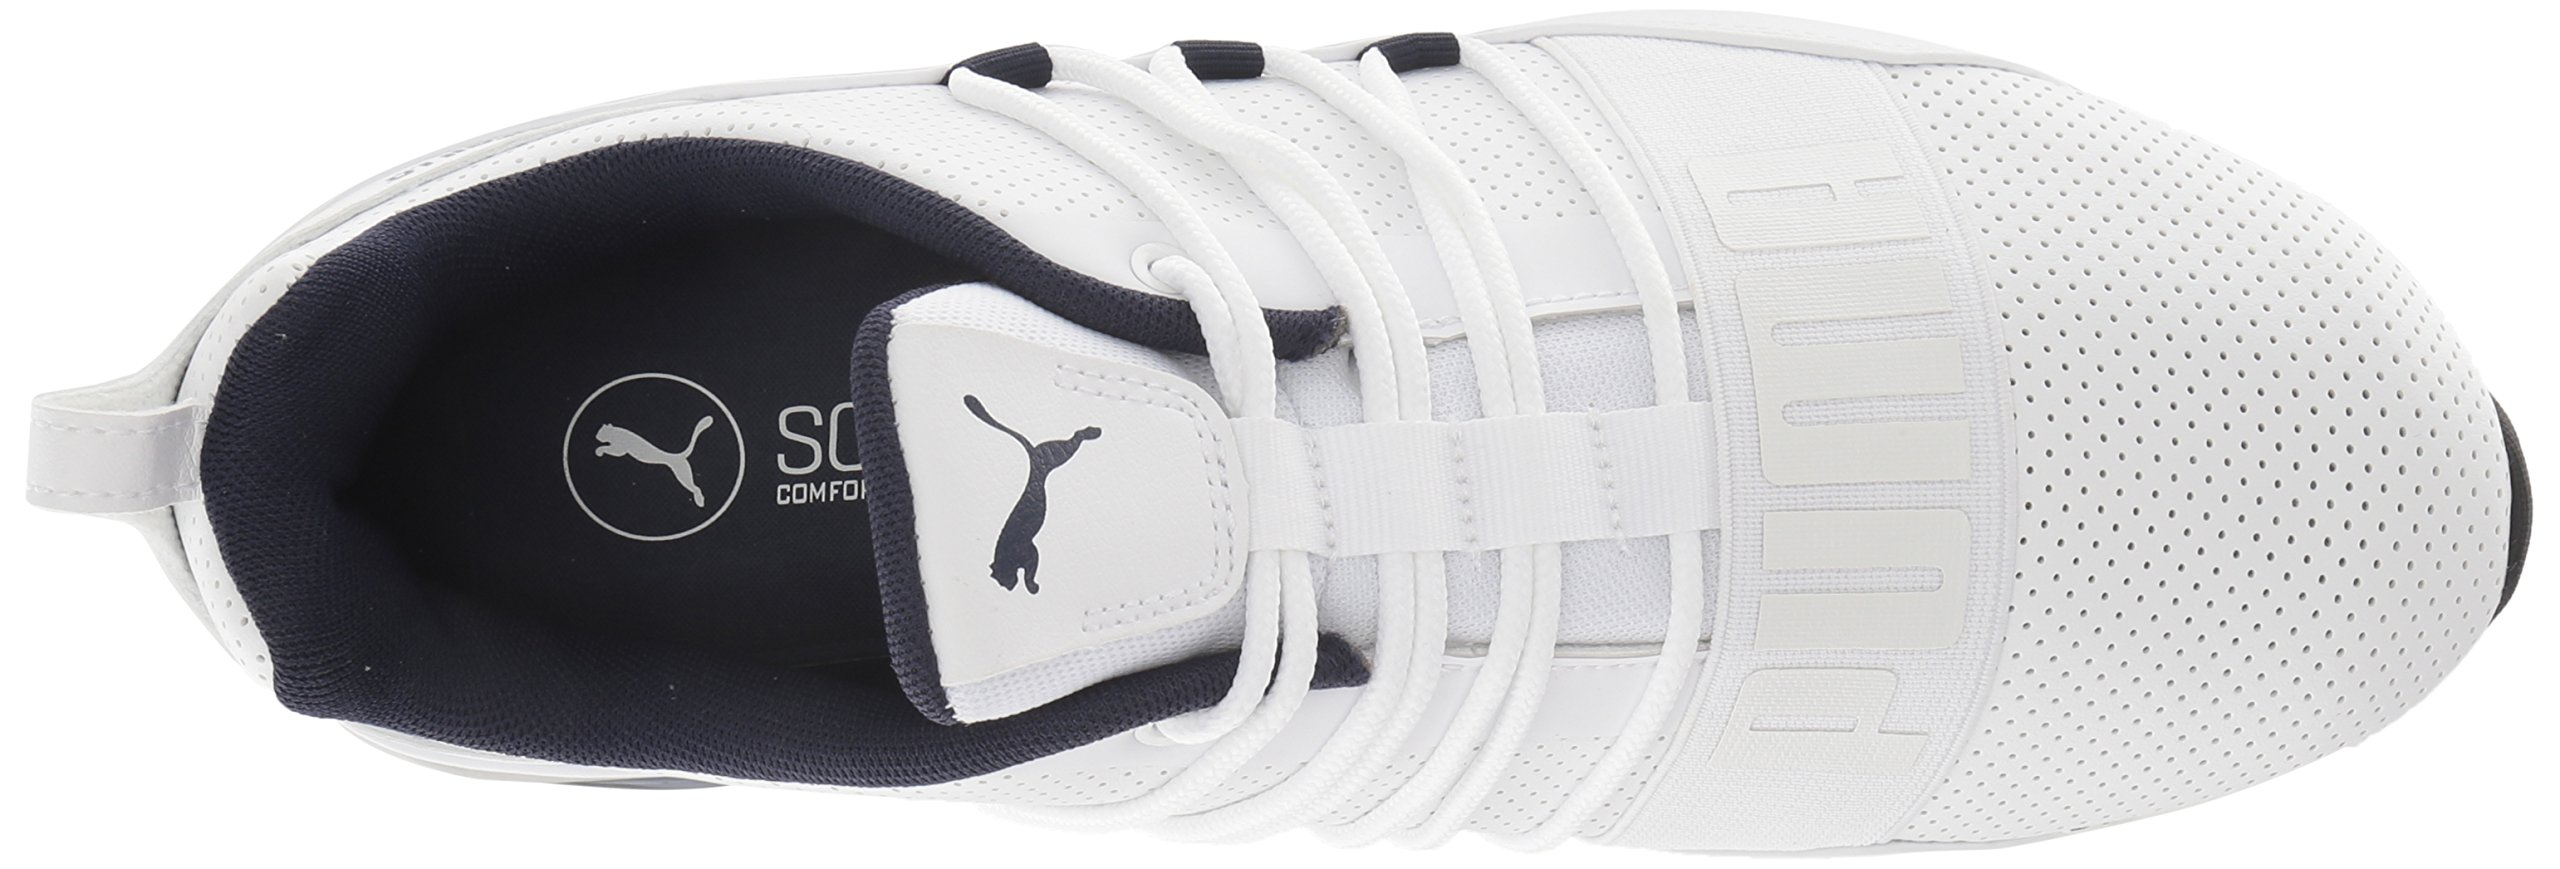 PUMA Men's Cell Regulate SL Sneaker, White Black-Peacoat Silver, 7 M US by PUMA (Image #7)